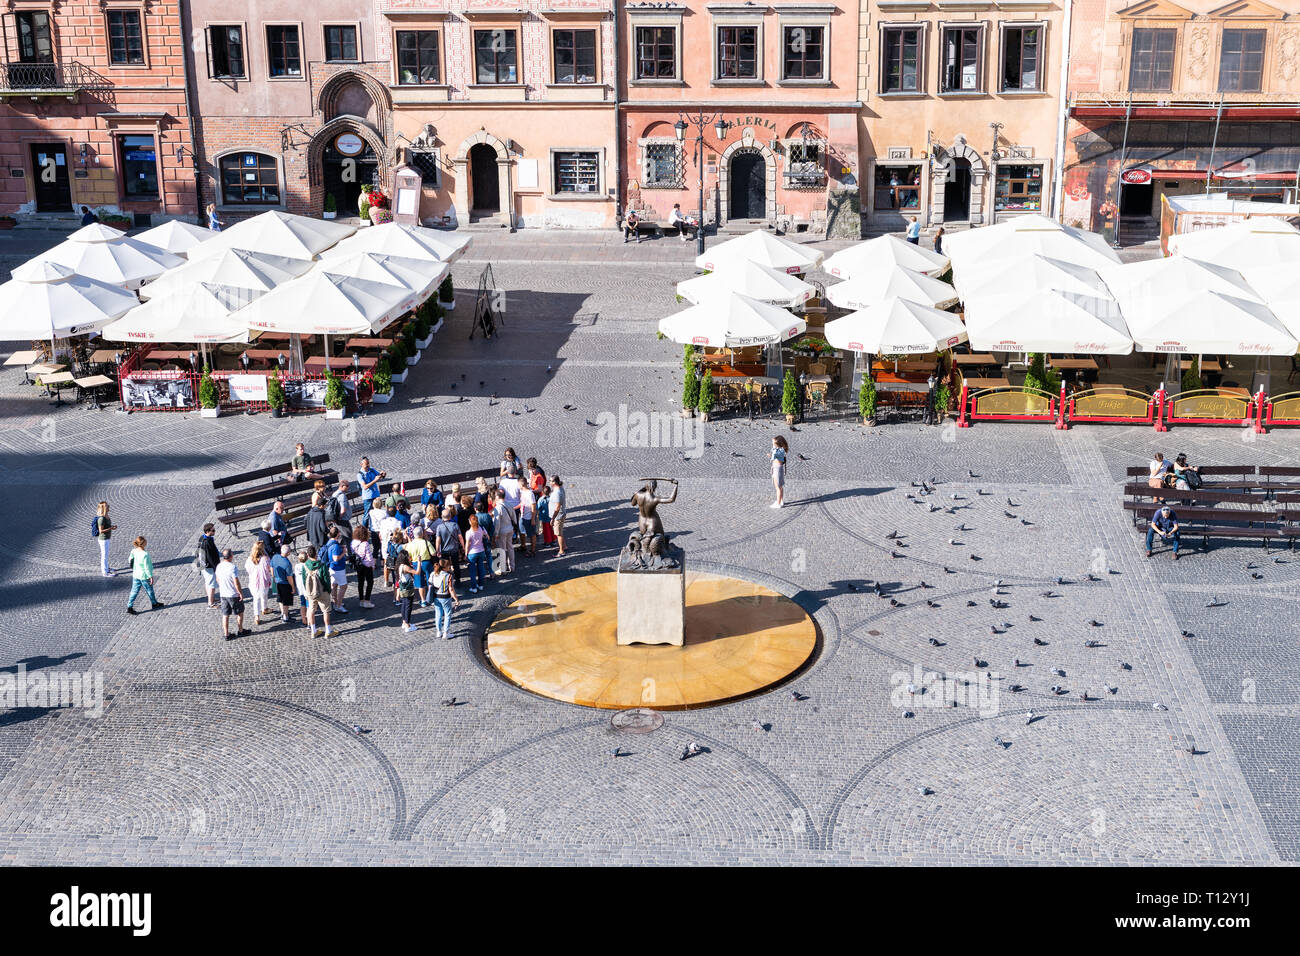 Warsaw, Poland - August 22, 2018: Historic old town market square with high angle view of buildings and tour group by fountain in morning Stock Photo